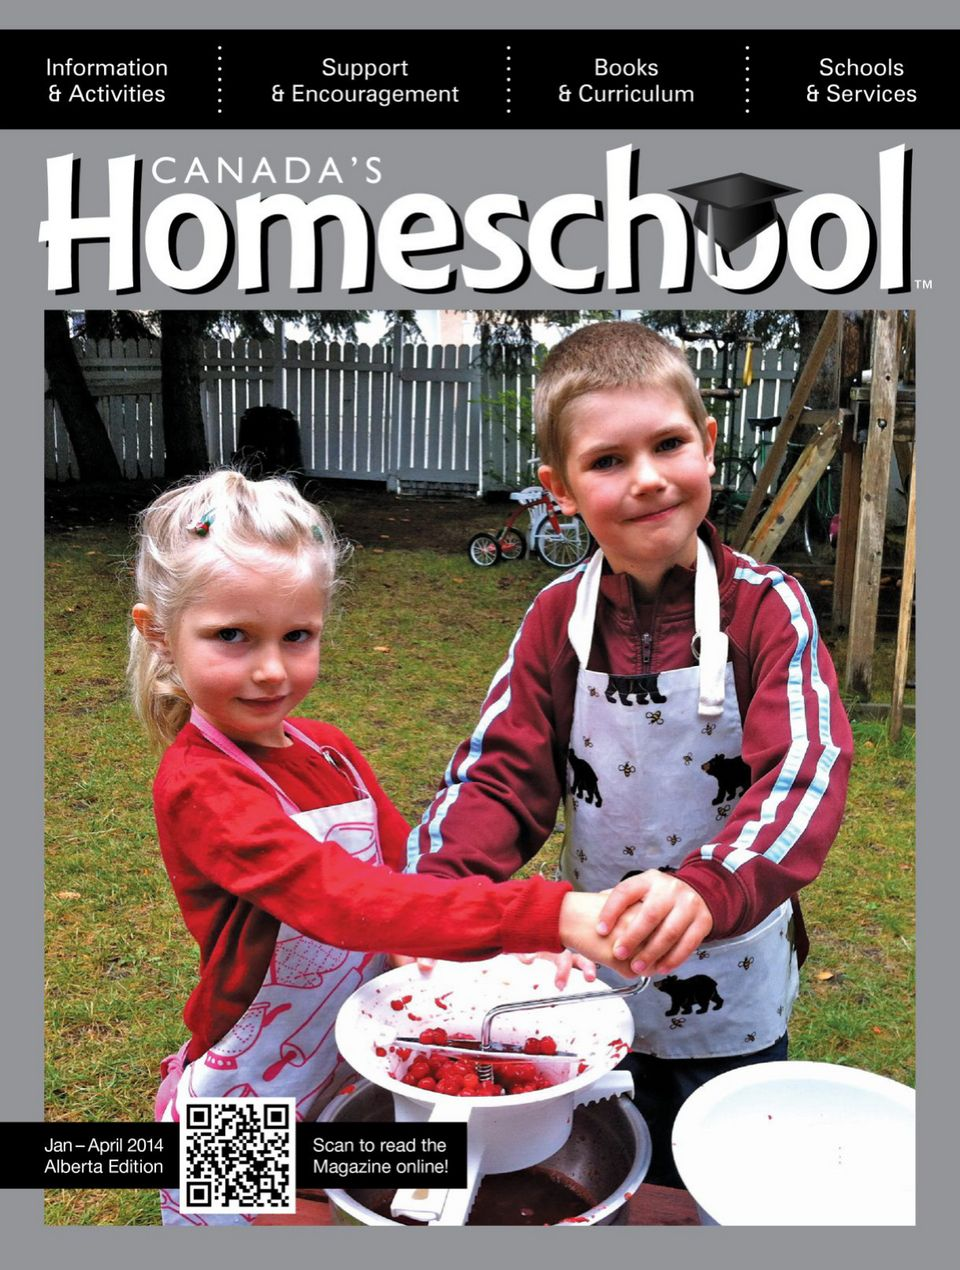 Canada's Homeschool Magazine. Alberta Winter 2013/2014